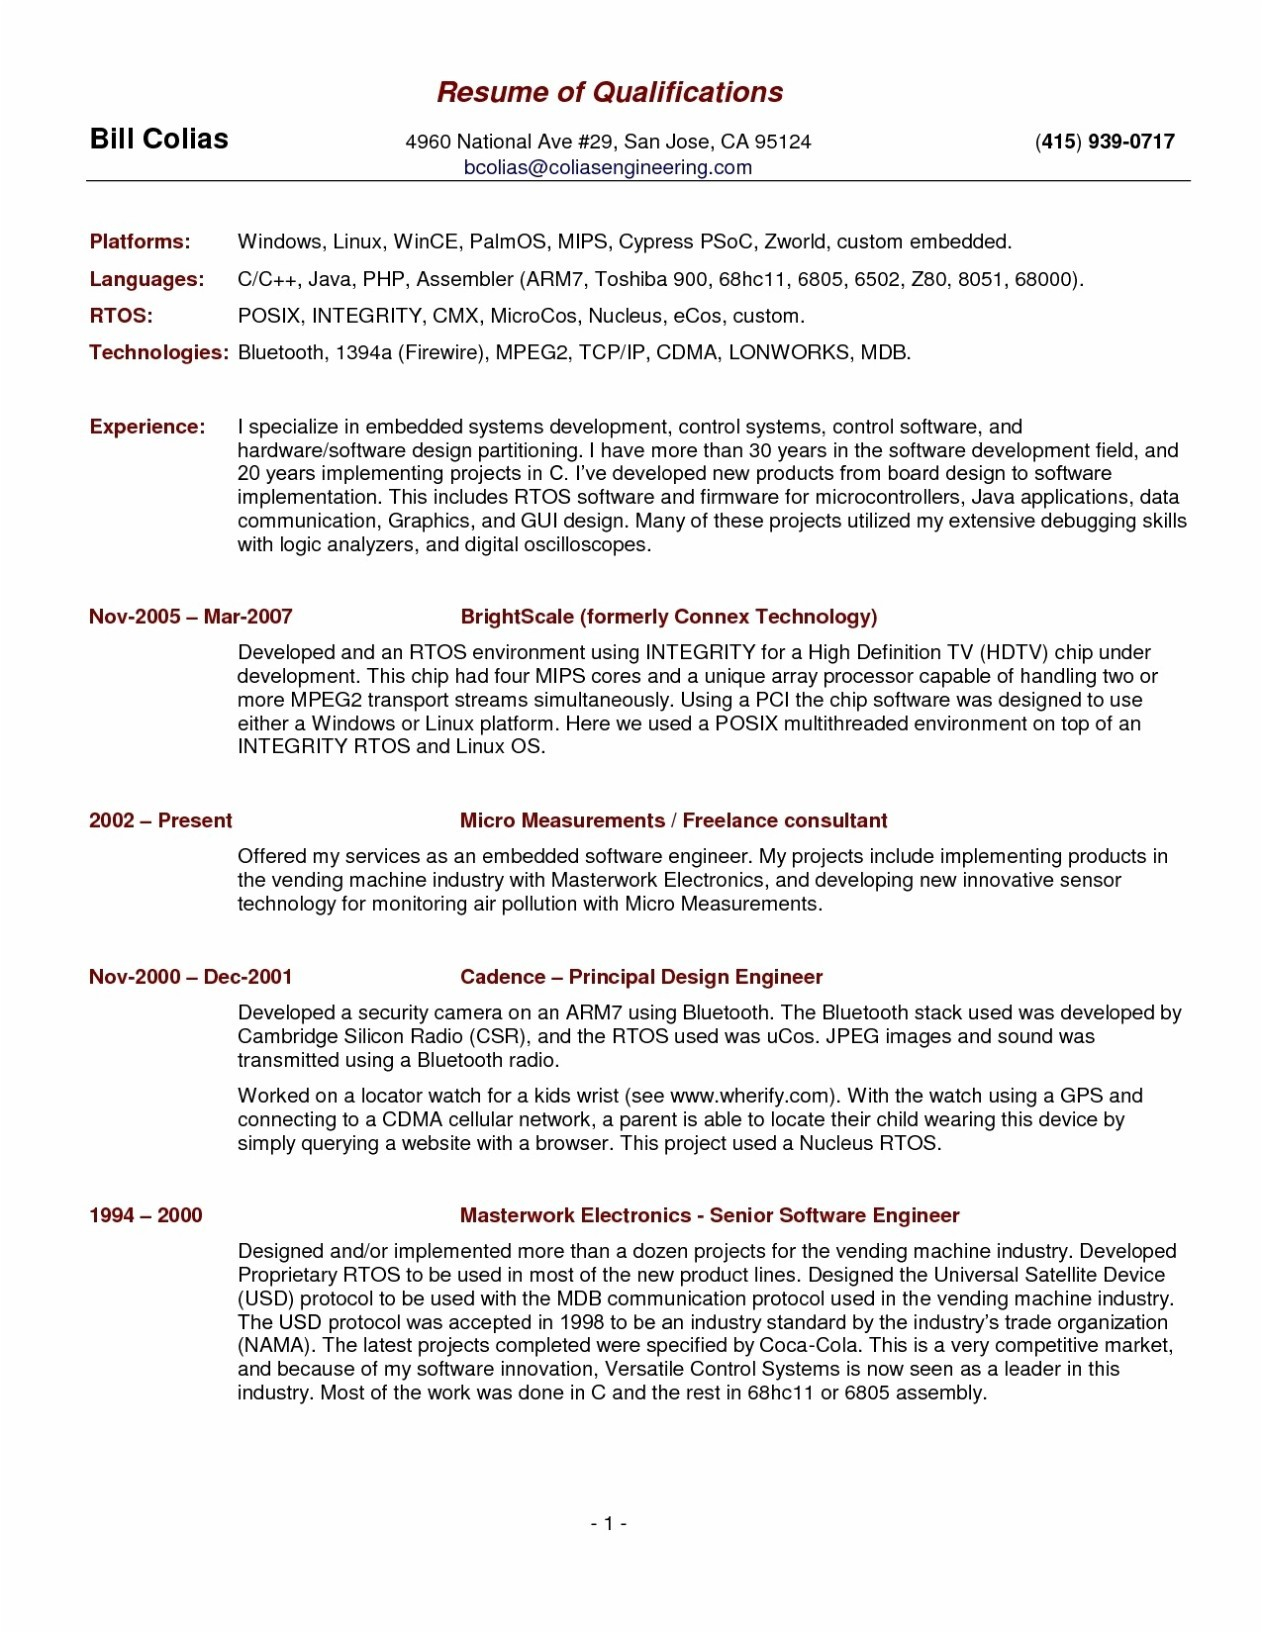 20 Years Experience Resume - Freelance Resume Samples Fresh It Resume Sample Pr Resume Template